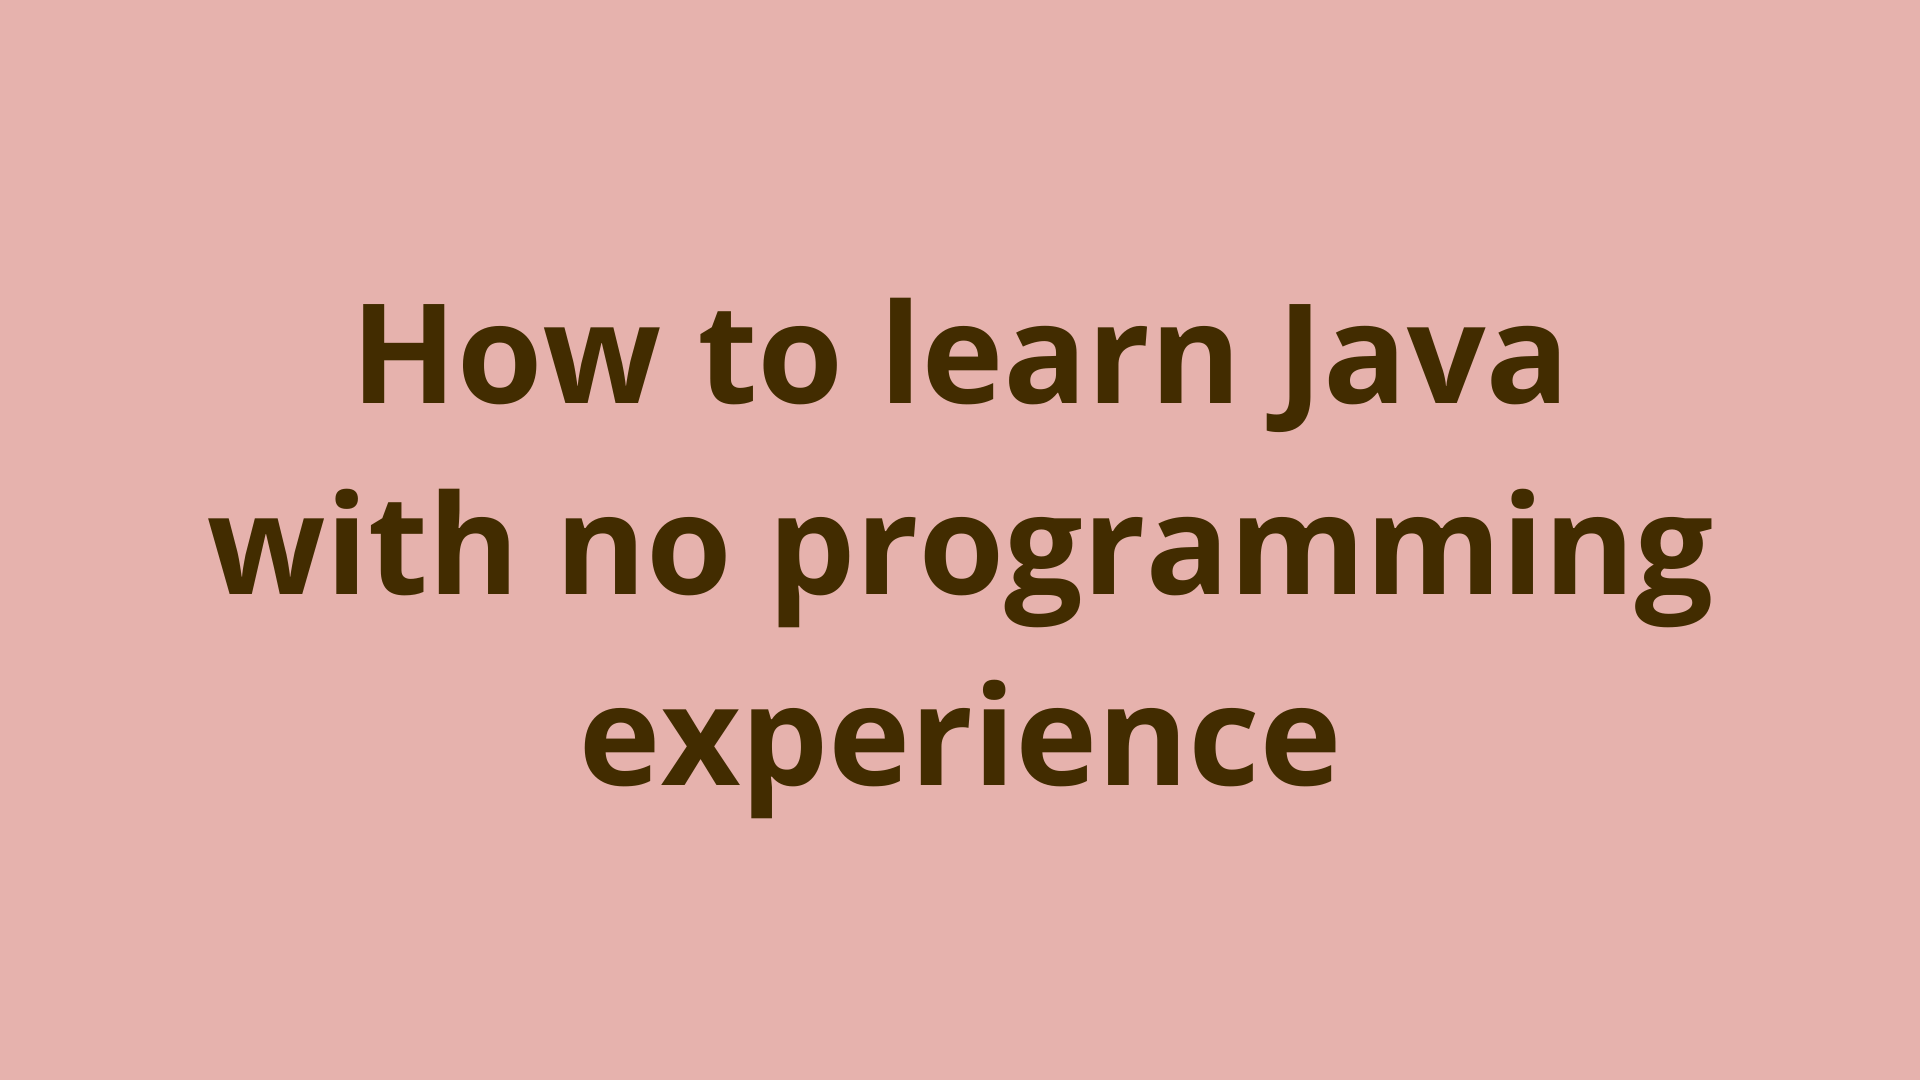 Image of How to learn Java with no programming experience